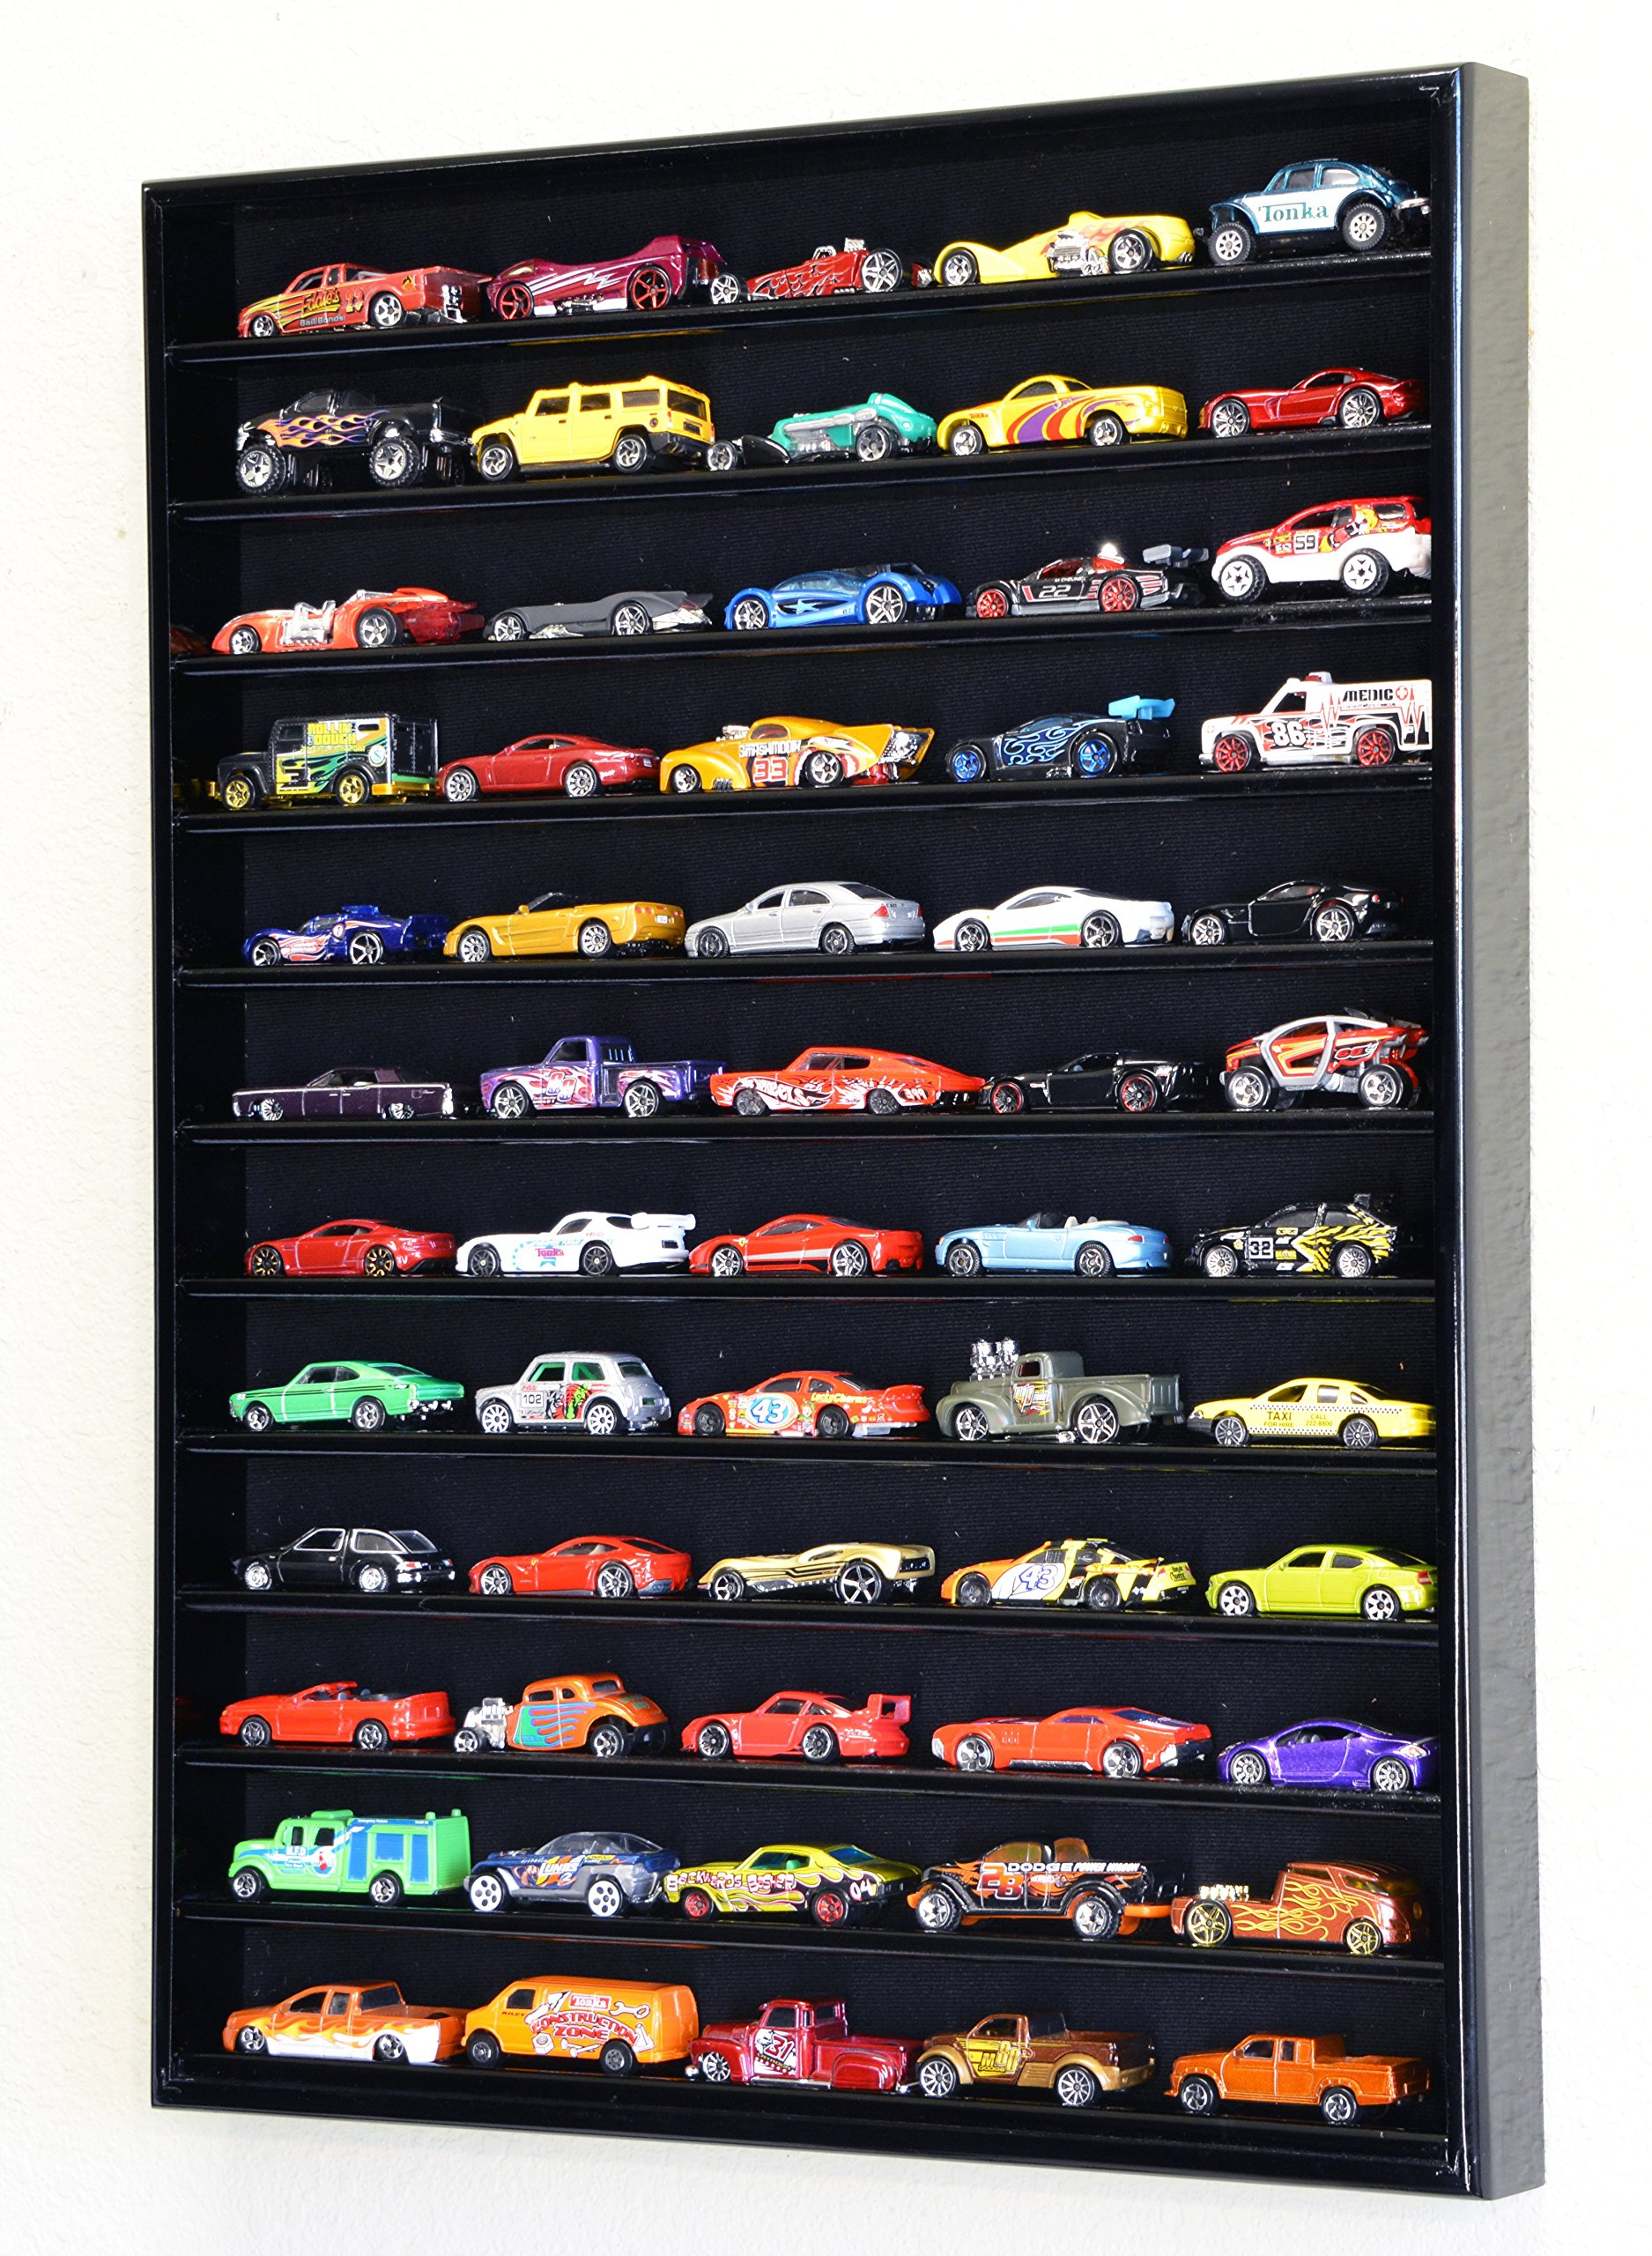 60 Hot Wheels Hotwheels Matchbox 1/64 Scale Diecast Model Cars Display Case - NO Door (Black Wood Finish)